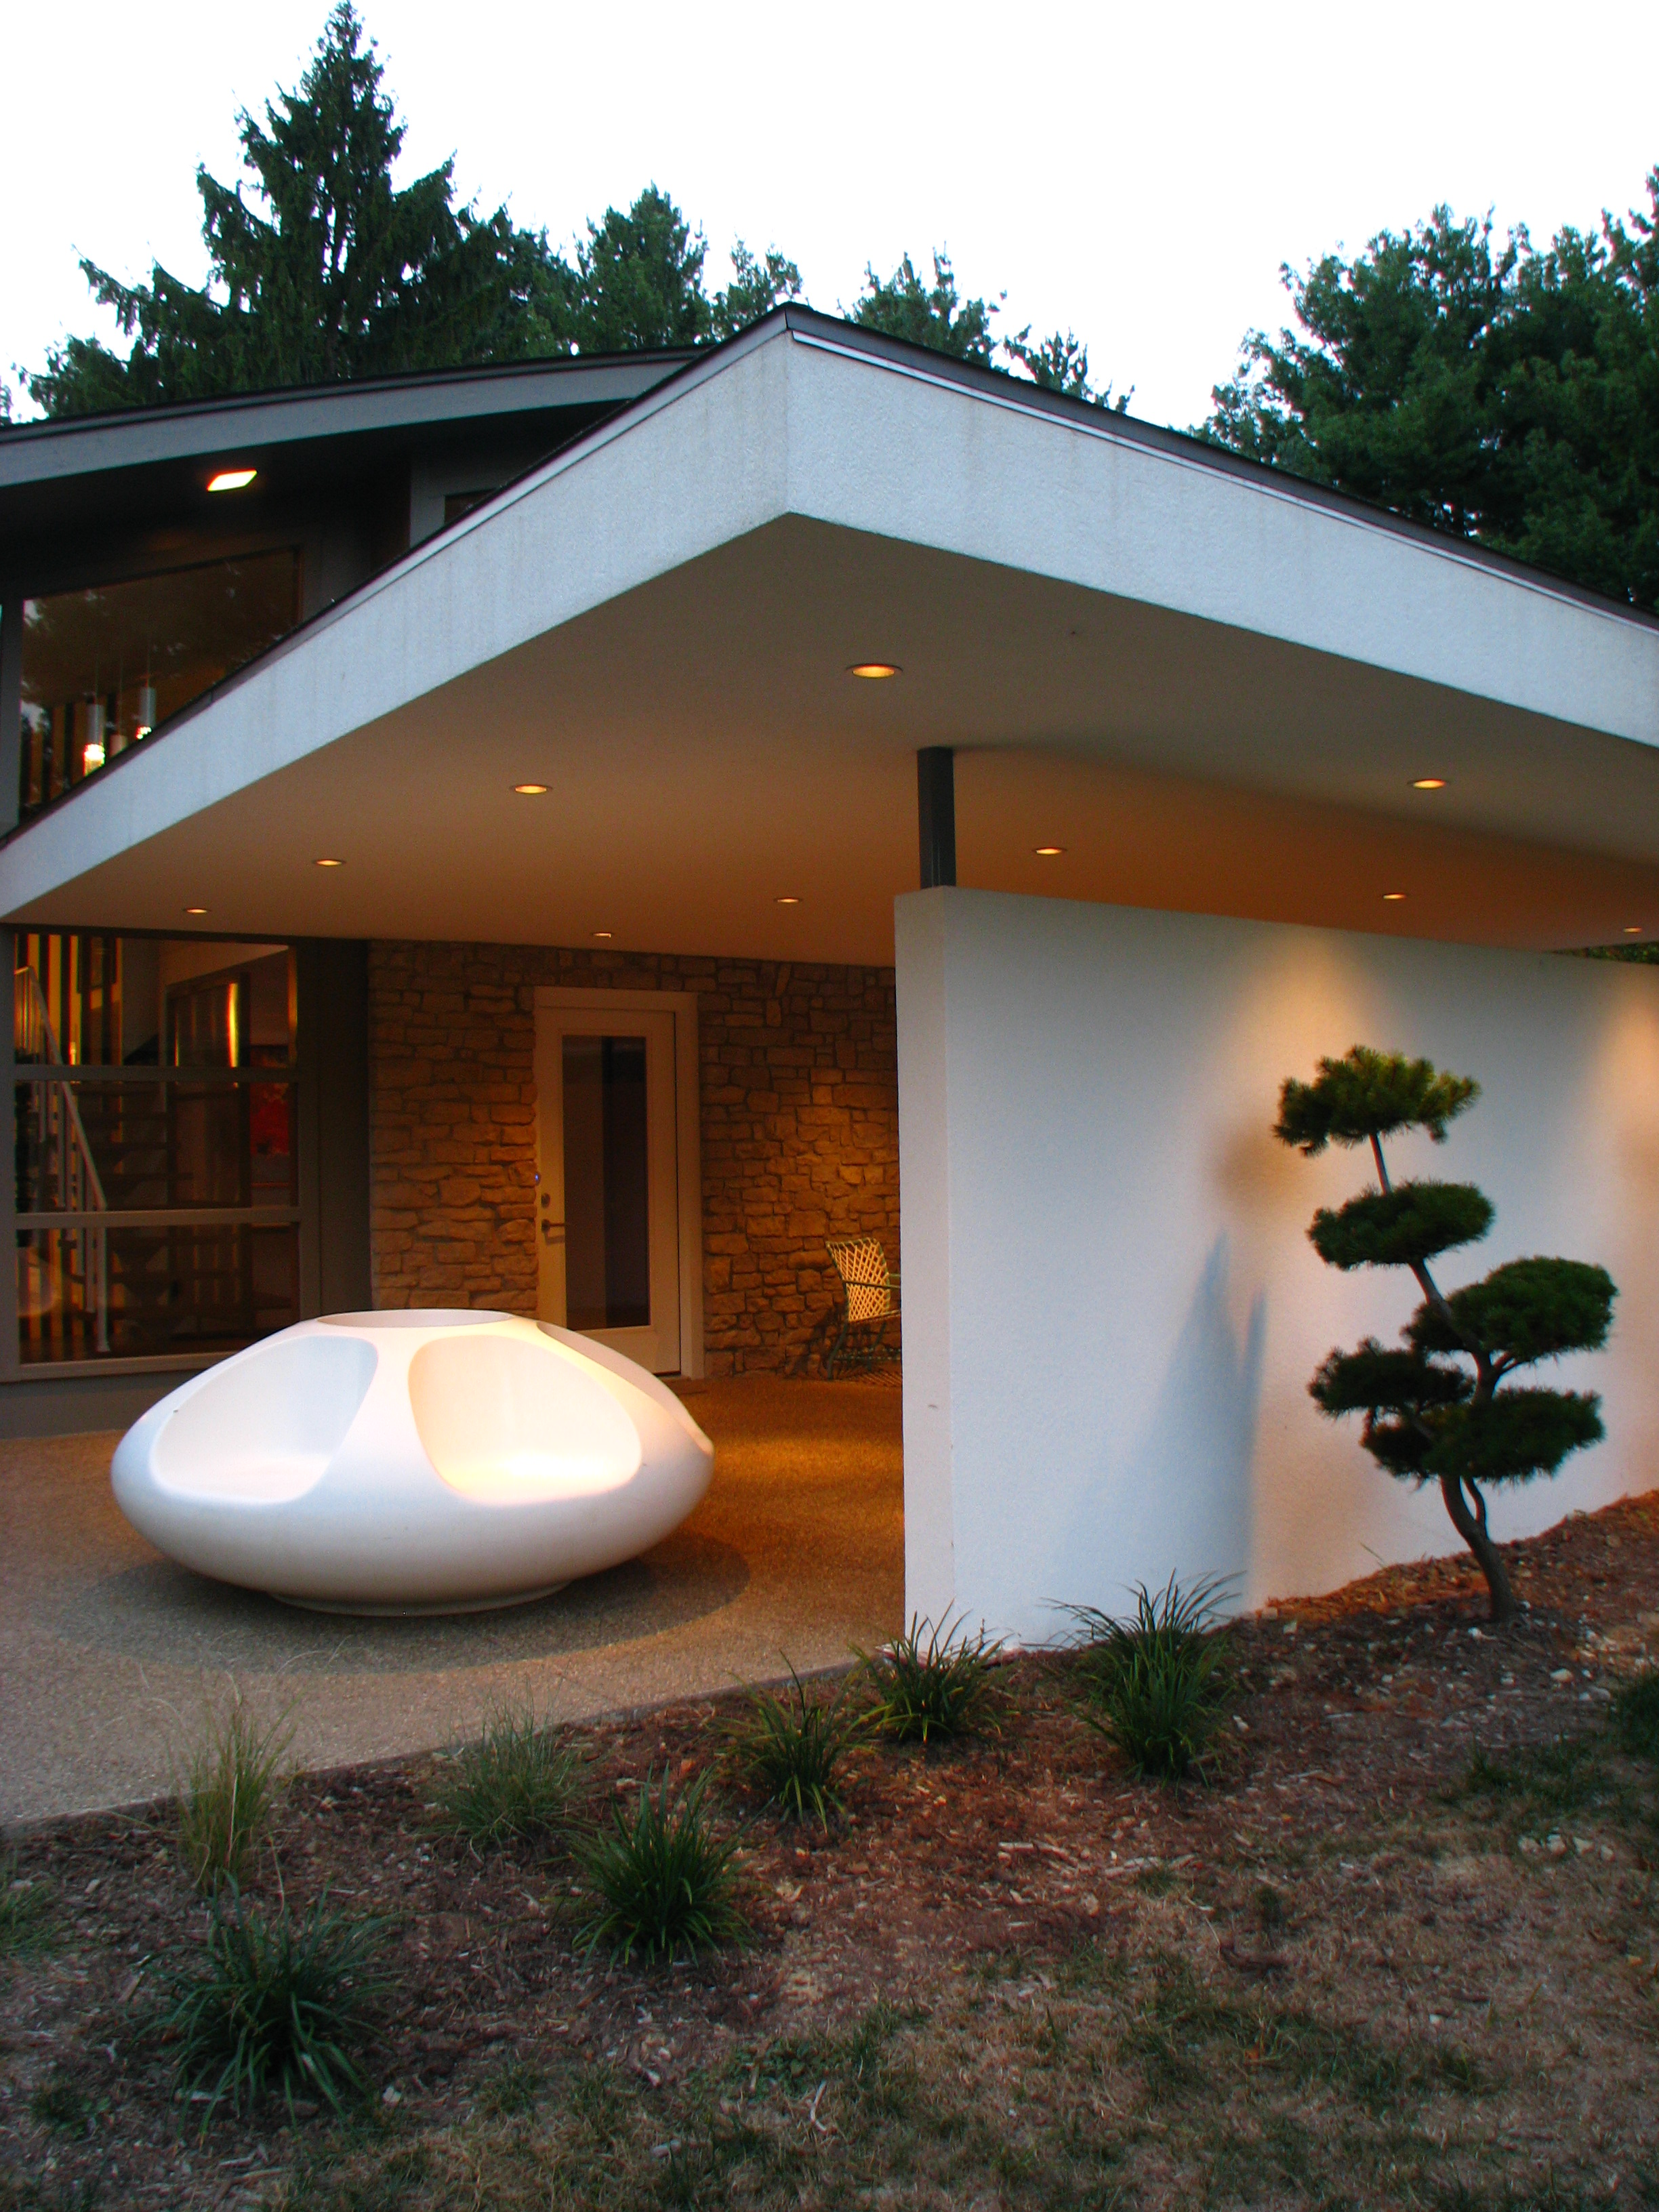 Outside House Lighting Fixtures Mid-century Modern Meets Minimalism | Housesandbooks